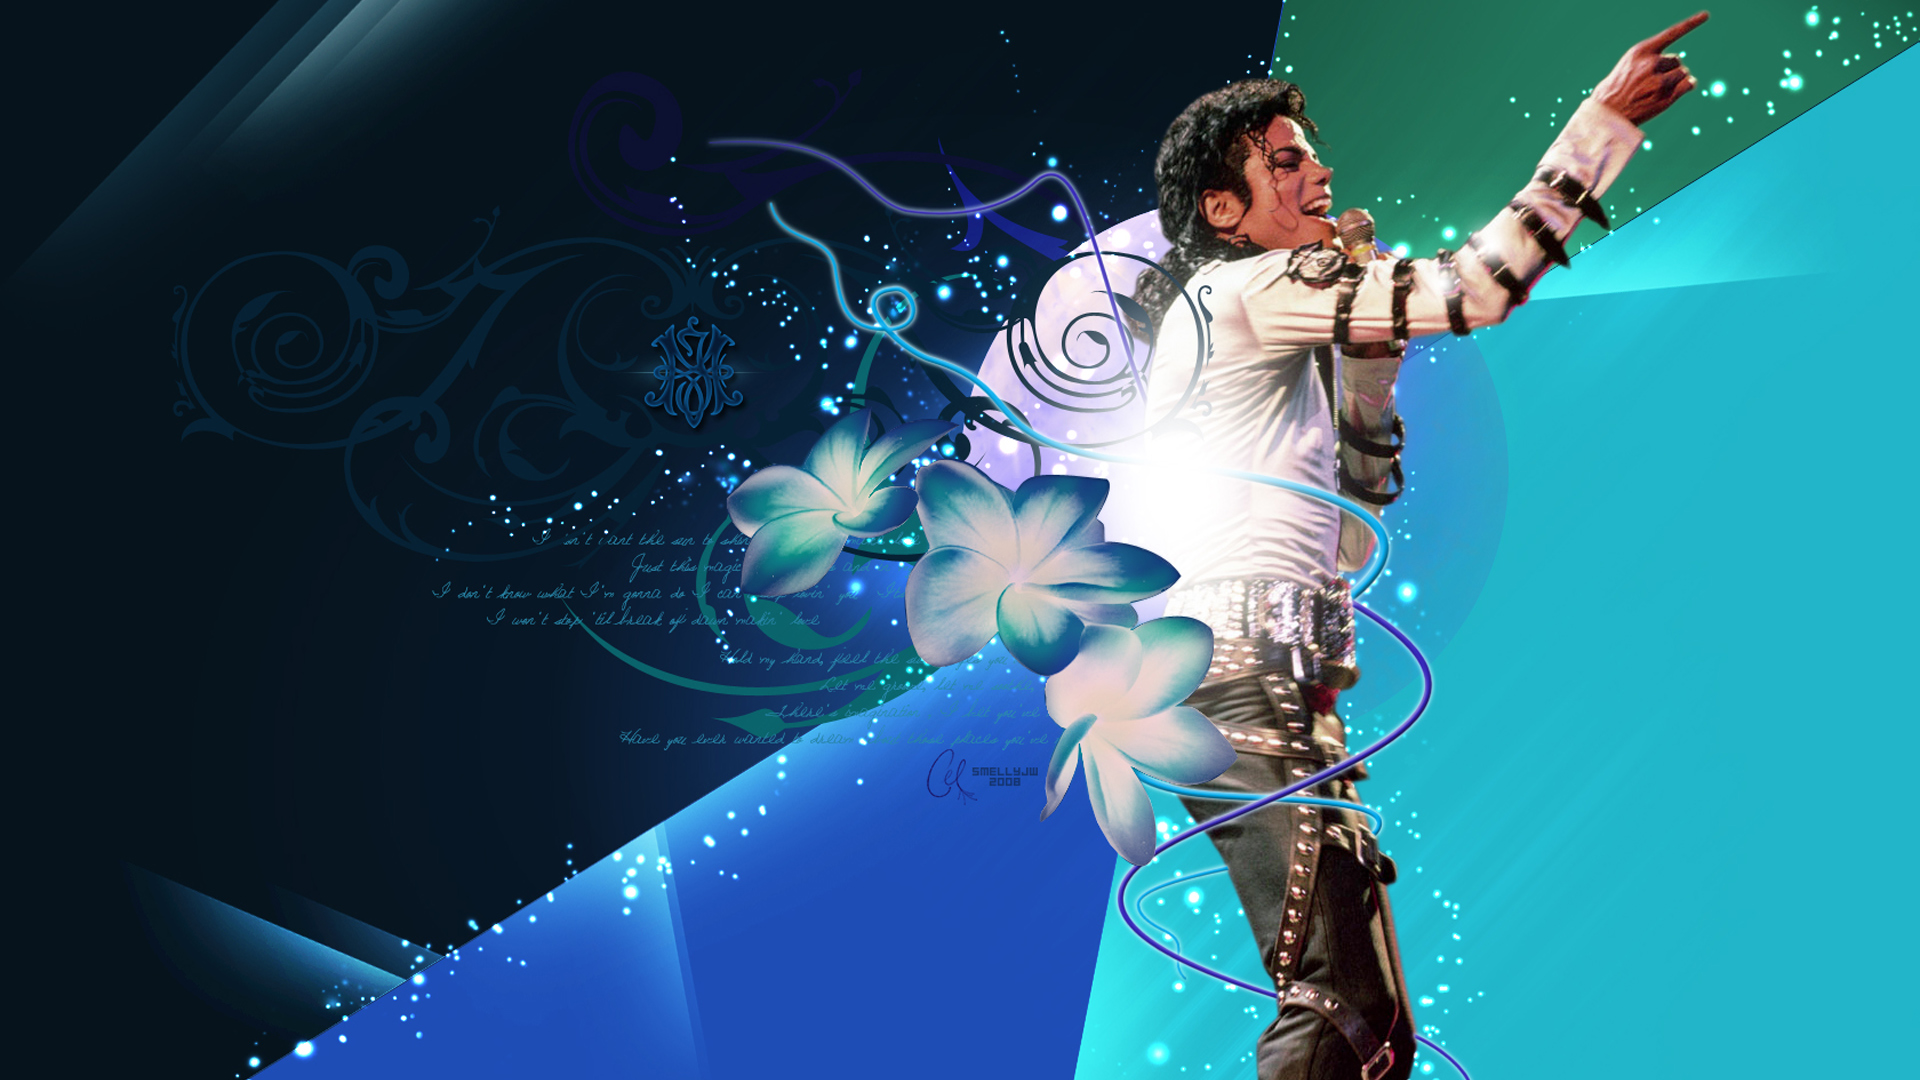 michael jackson wallpaper hd 9335